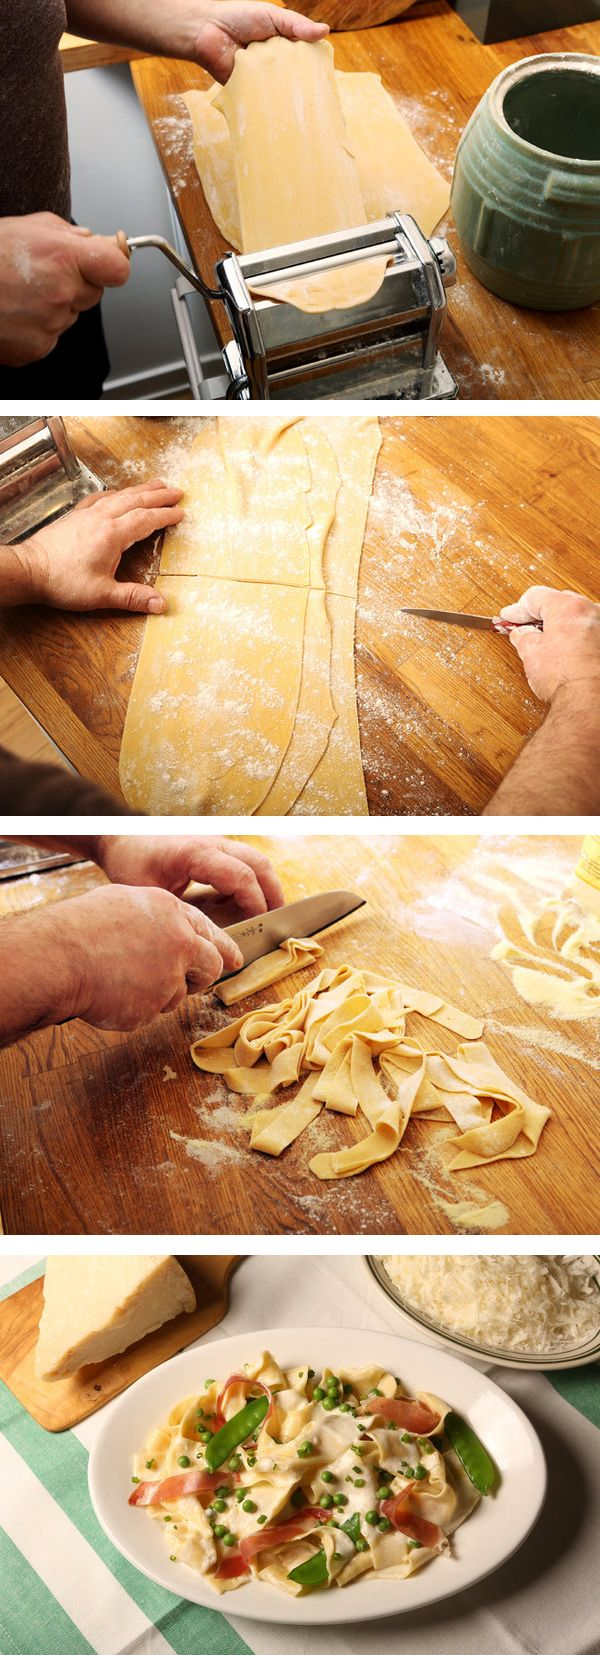 Making fresh egg noodles for pasta with prosciutto and peas || Photo: Fred R. Conrad/The New York Times